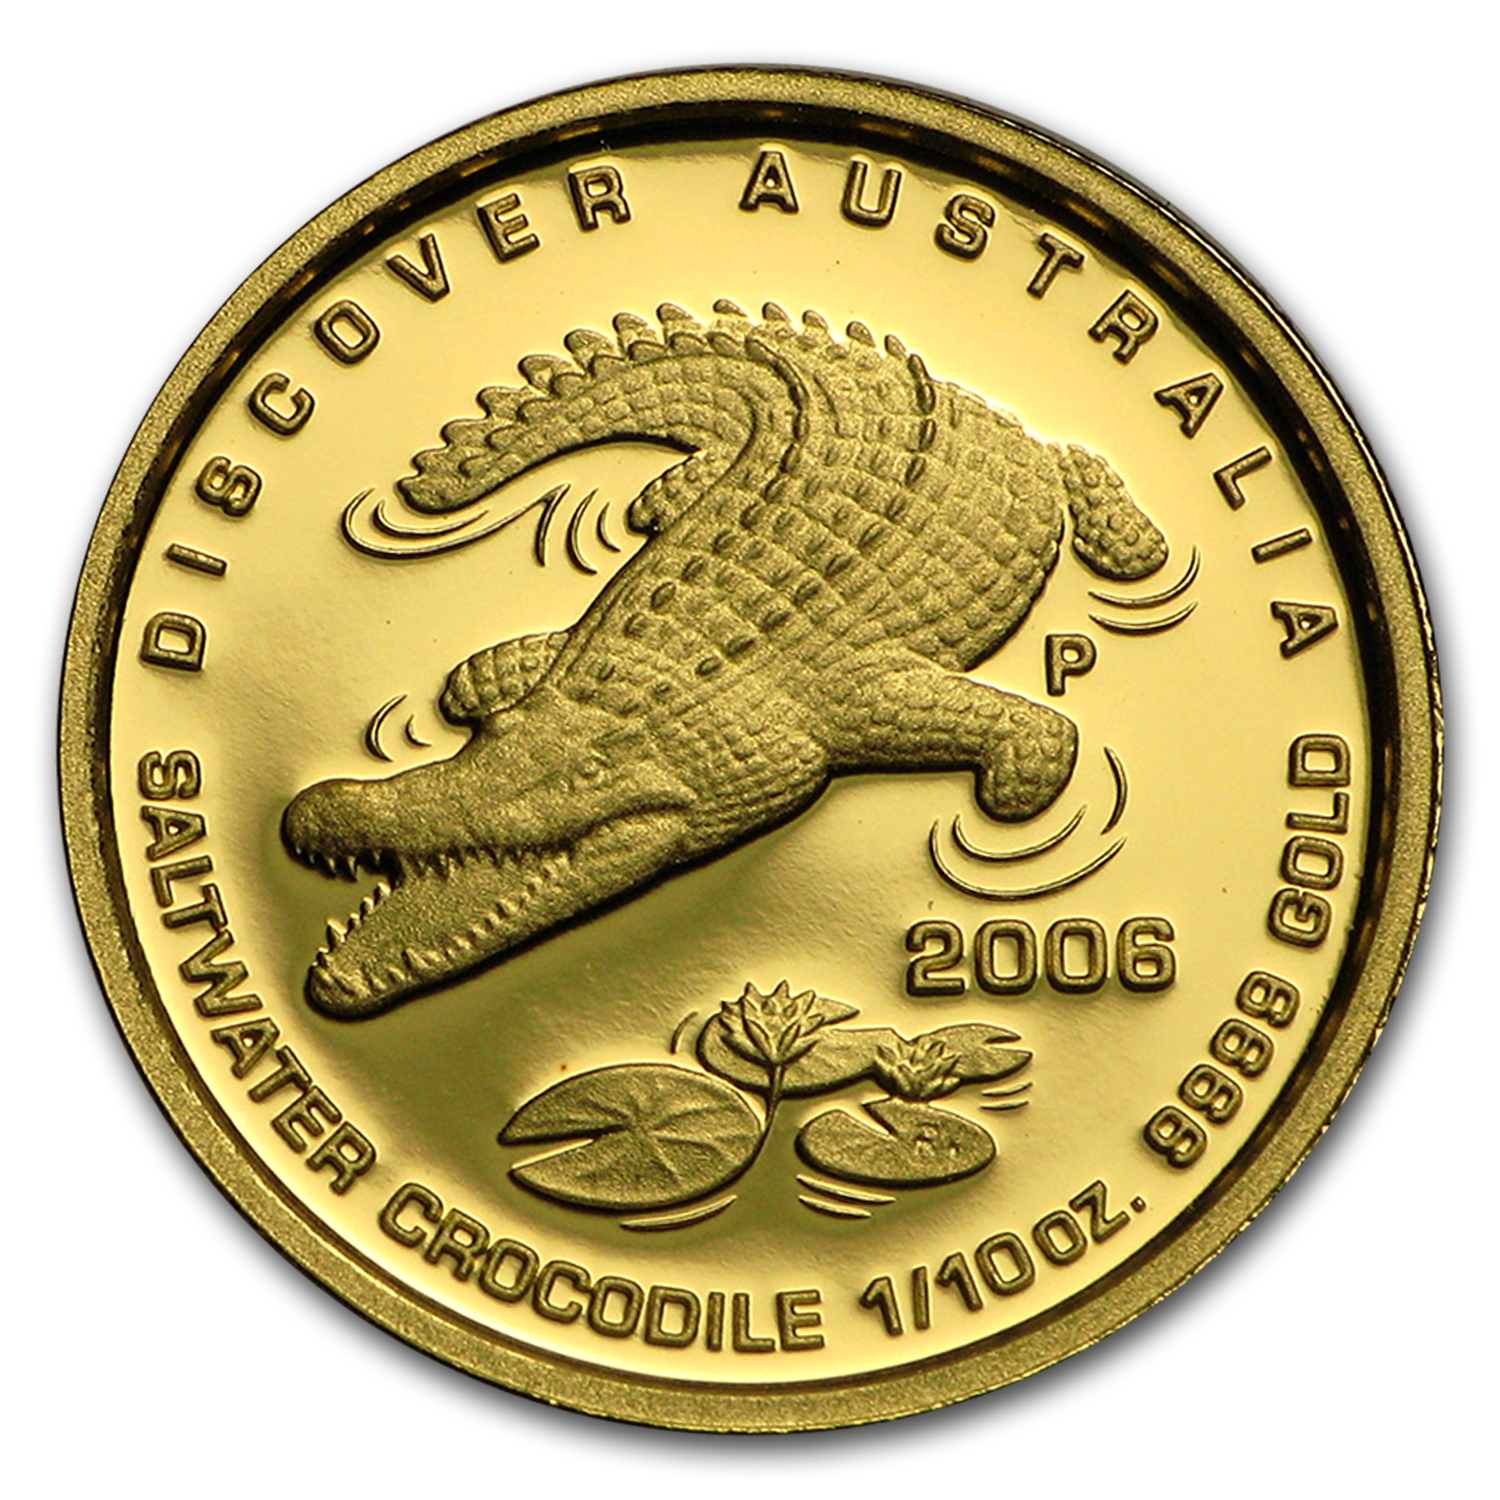 2006 1/10 oz Gold Crocodile Discover Australia Proof